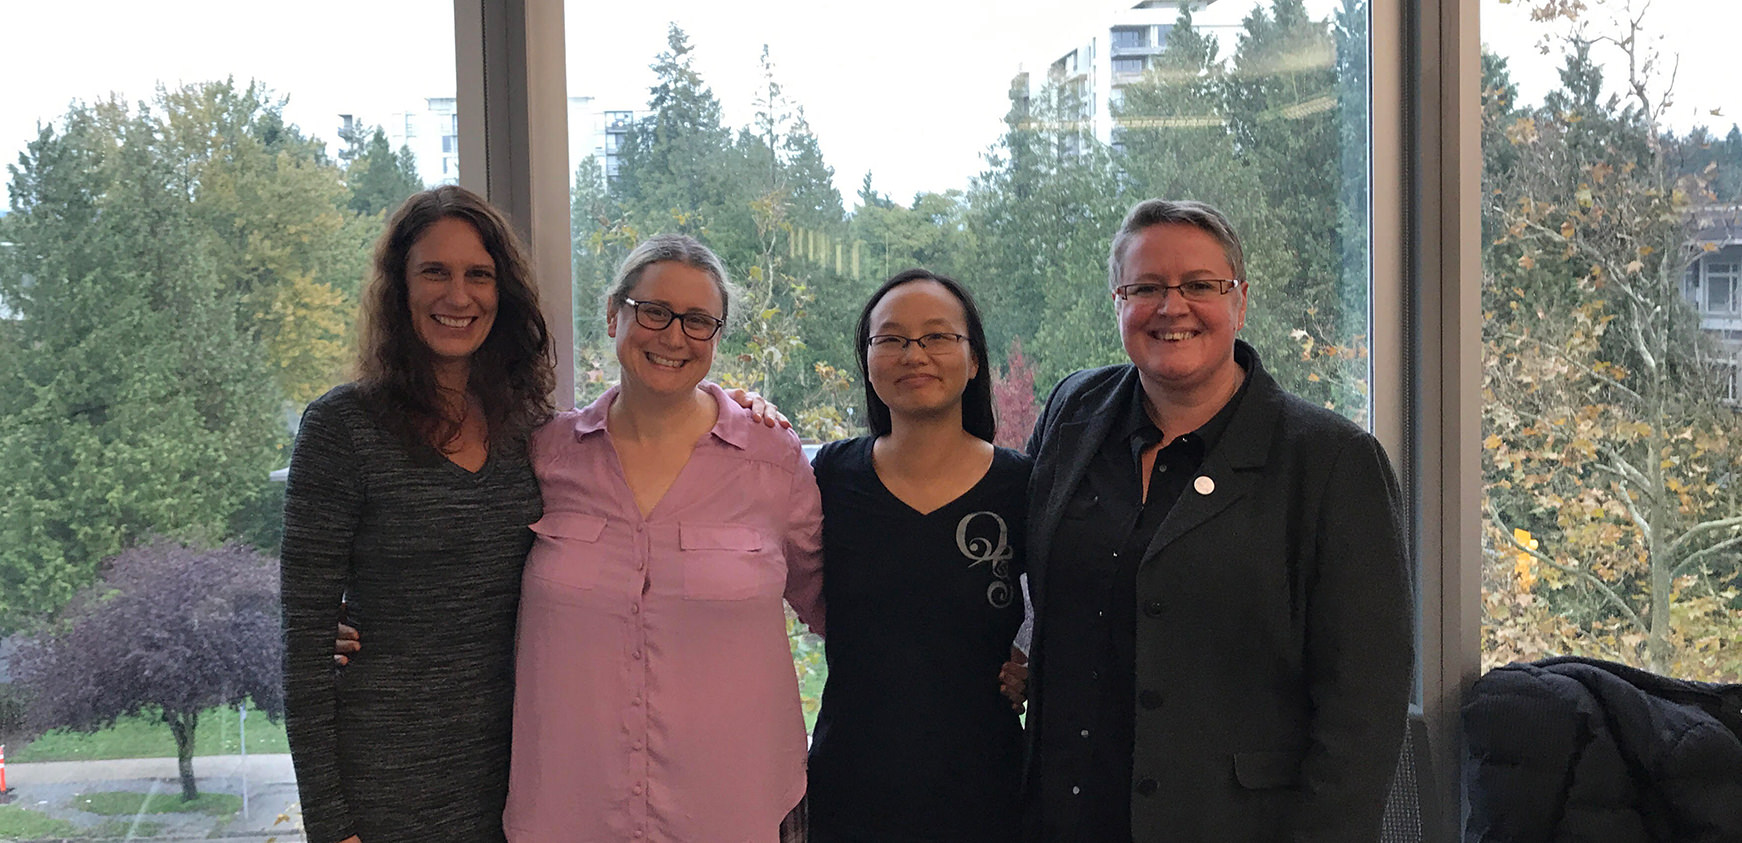 Photo of: Dr. Erin Michalak, Dr. Michelle Walks, Dr. Iva Cheung, and Beverley Pomeroy, standing together in front of a window.